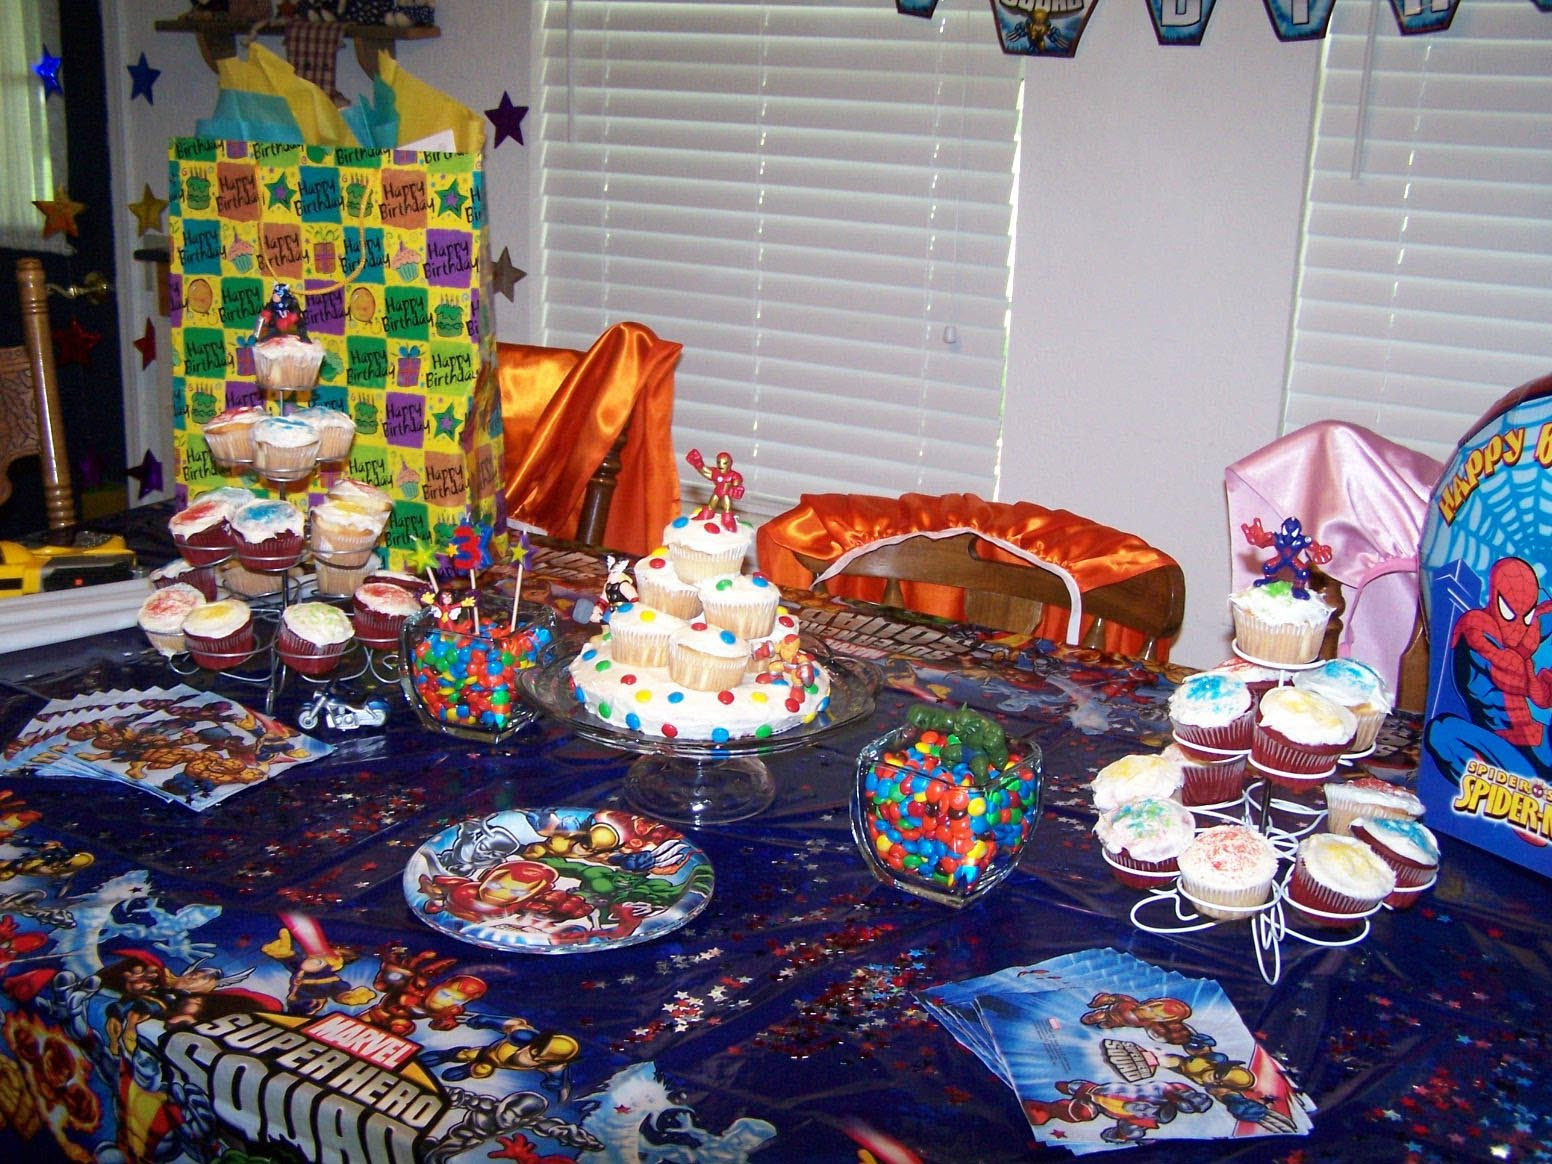 Best ideas about Kids Birthday Party Decorations . Save or Pin Find the Right Kids Party Decorations for Your Fest Now.